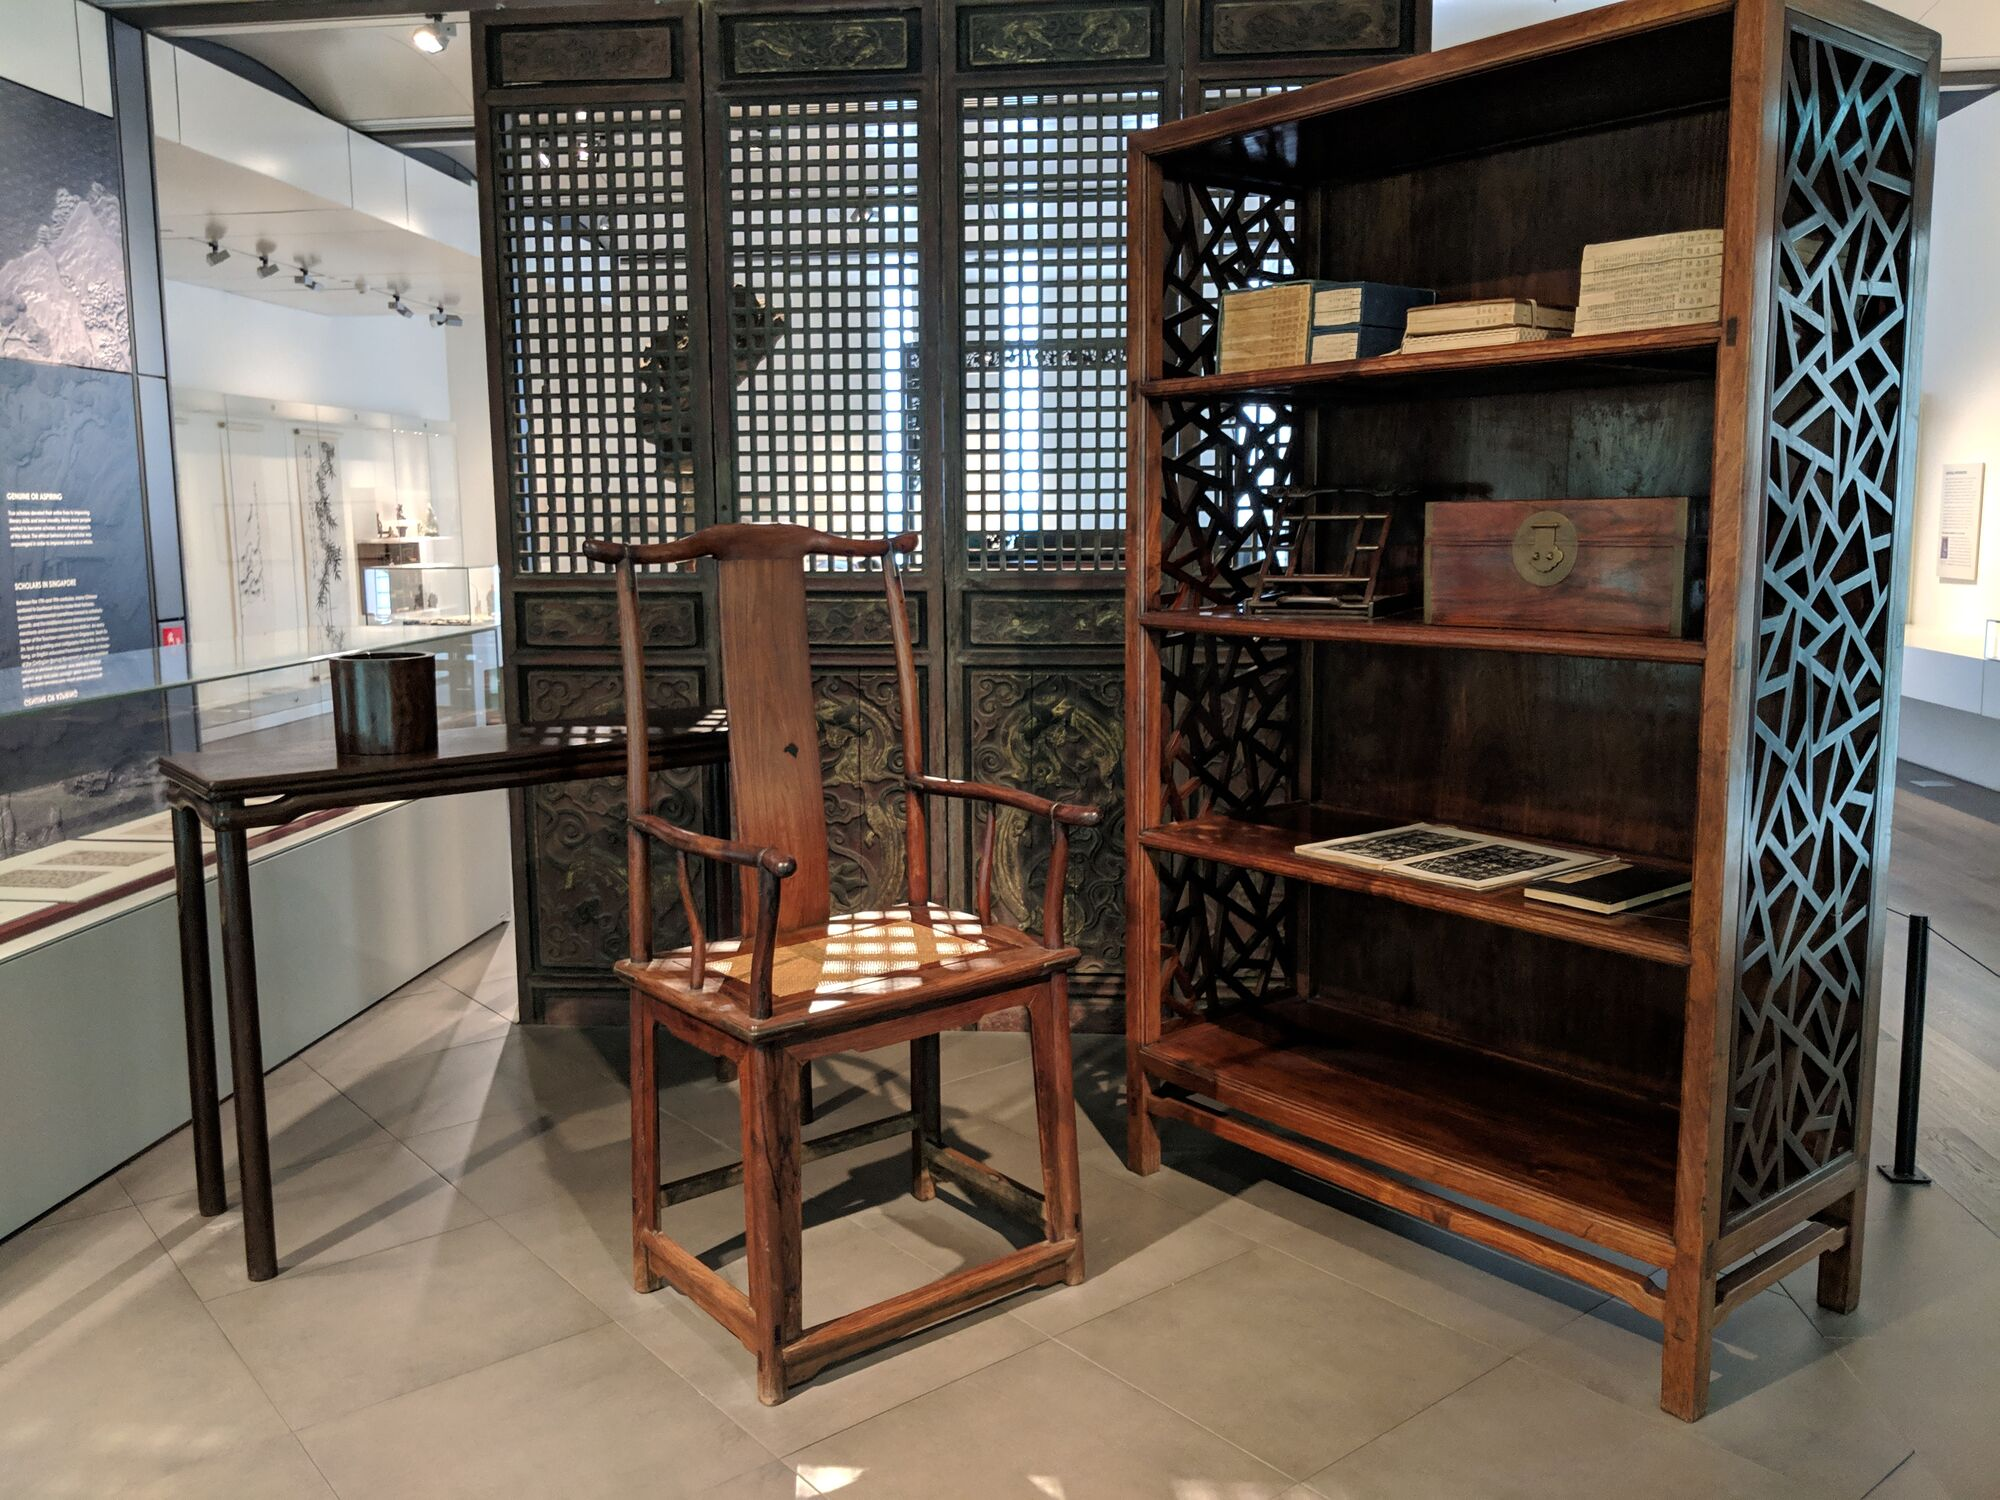 The Scholar's studio, 17th to 18th century, An elite scholar of the Ming or Qing dynasty would design a studio where he could study, meditate, calligraphy and painting.